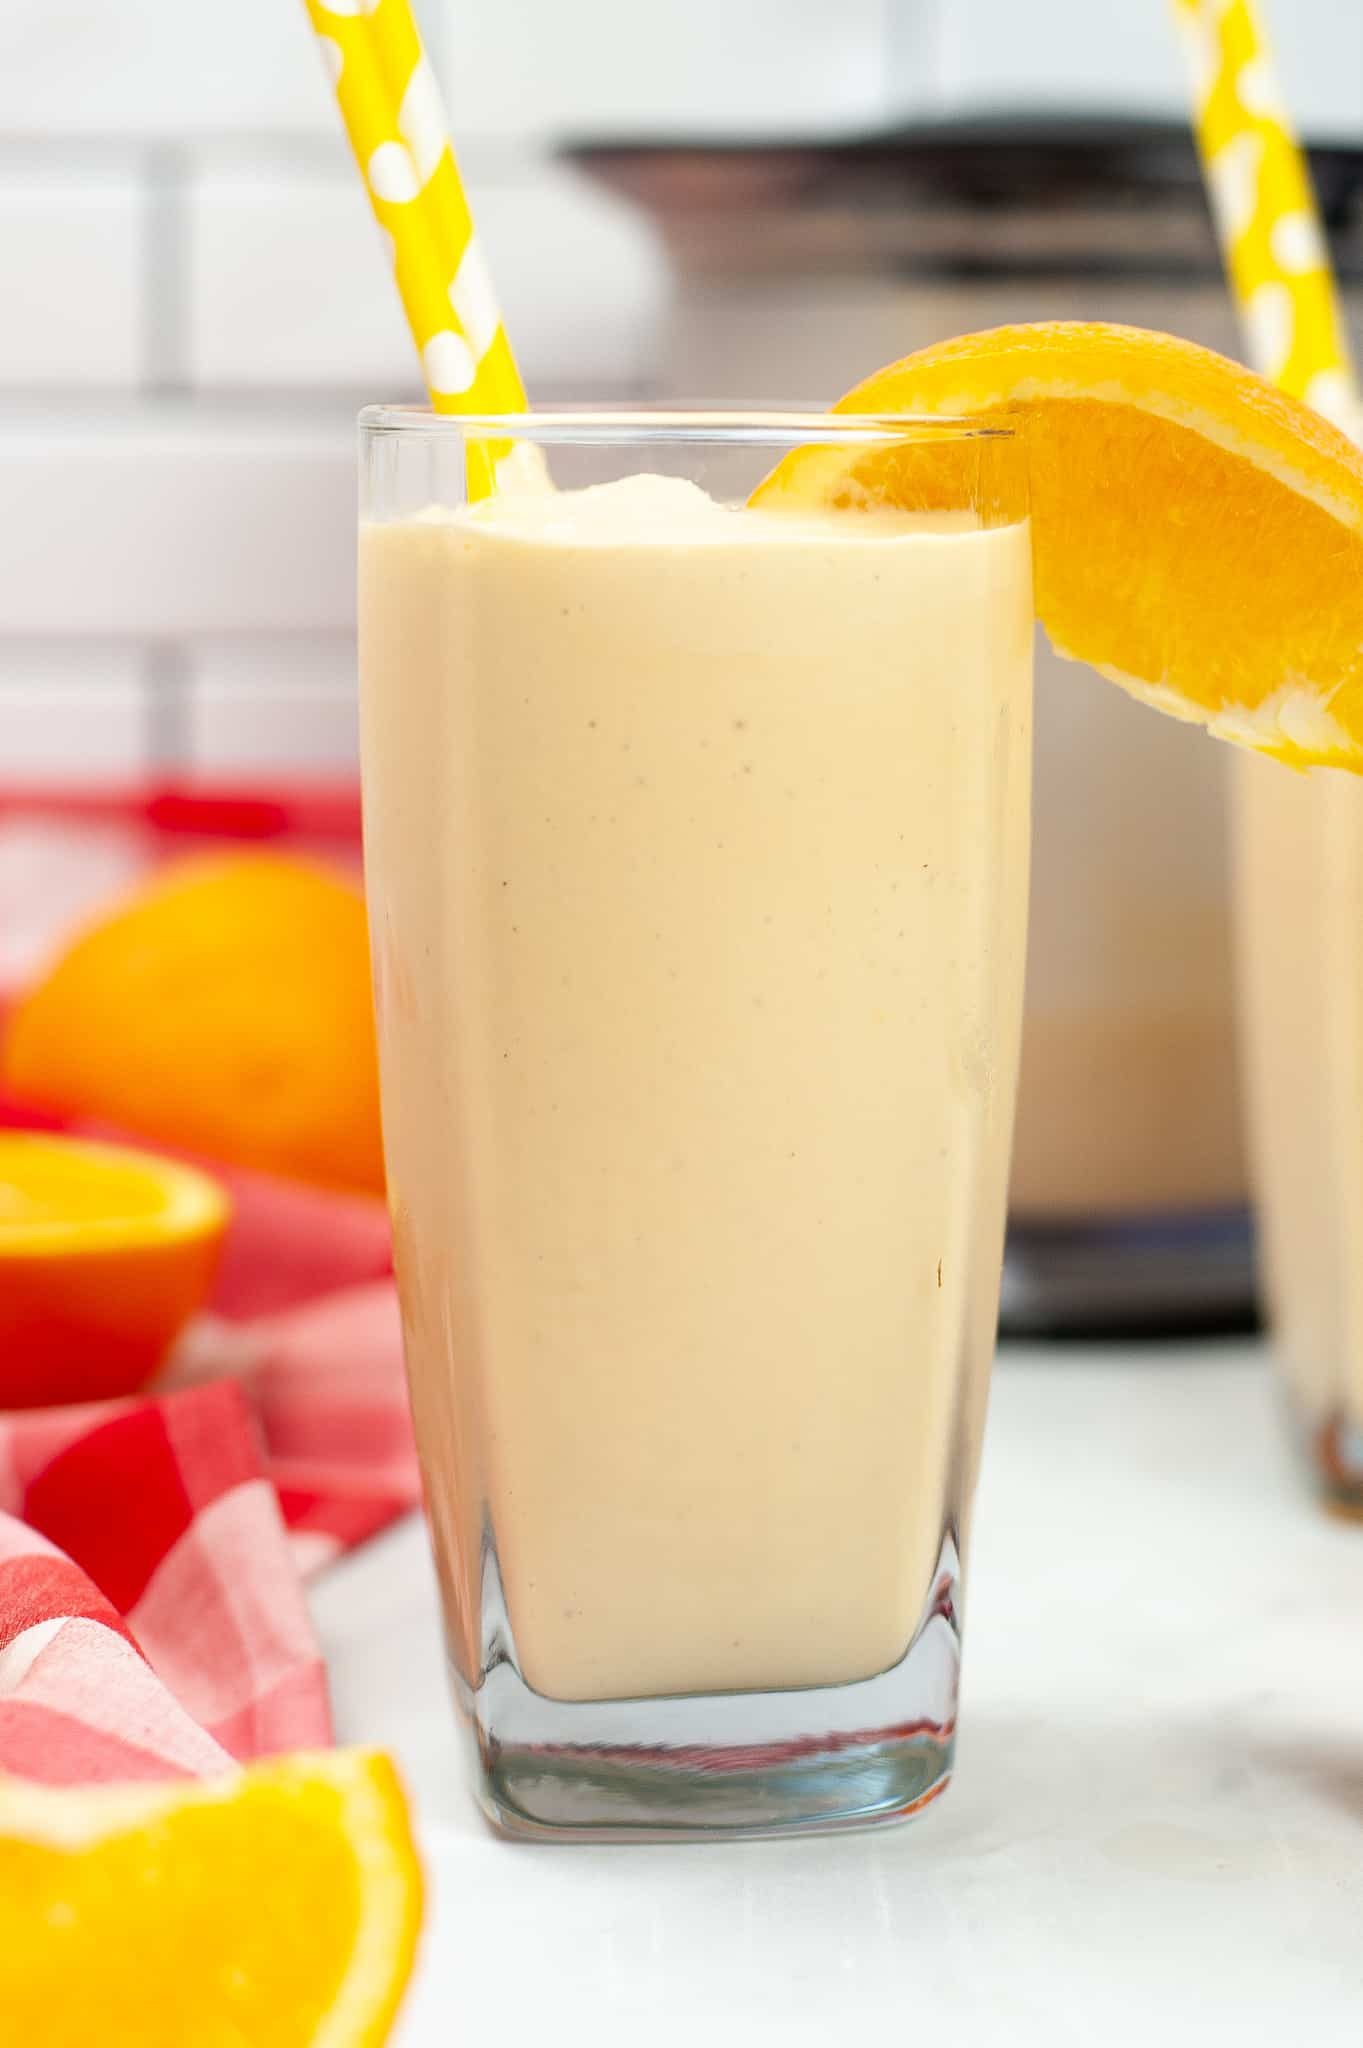 A tall clear glass filled with orange creamsicle Milkshake with a slice of orange in it.